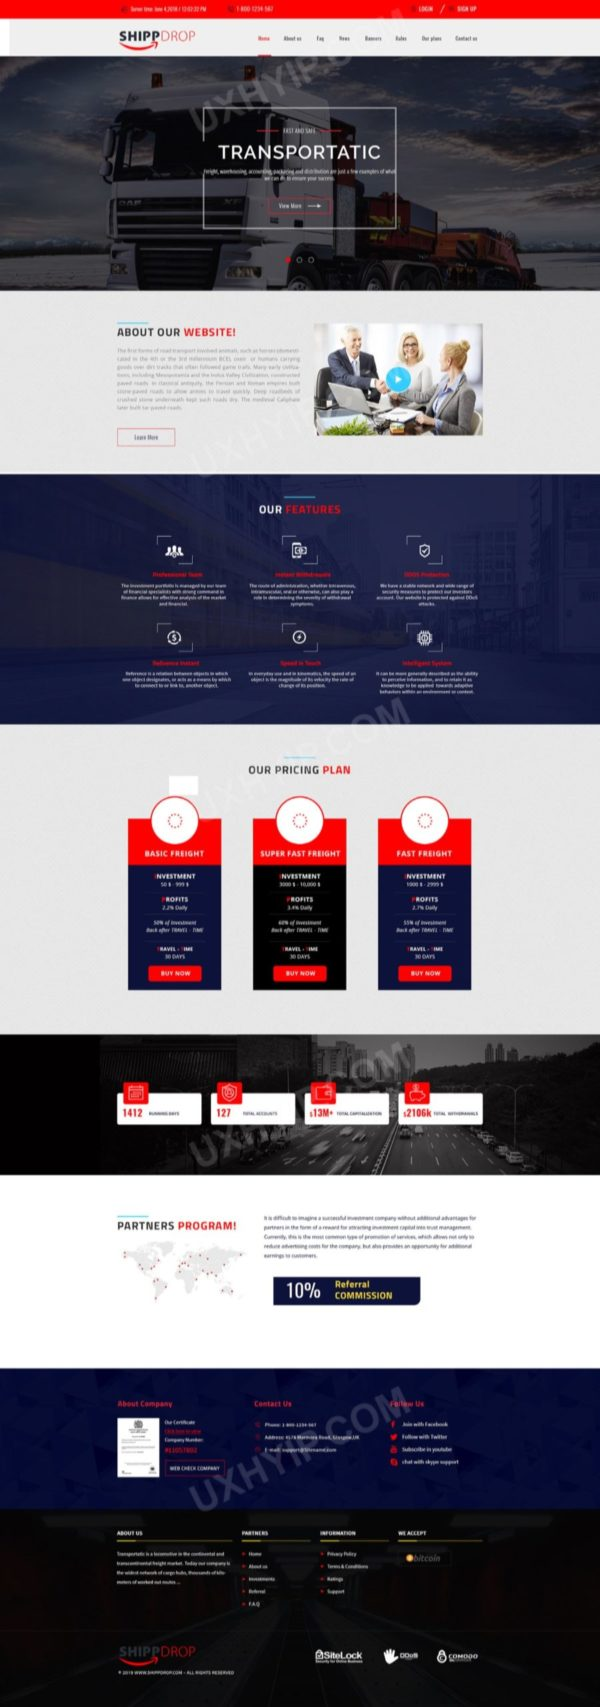 HYIP Template - Investment Business Template ShippDrop ID 110